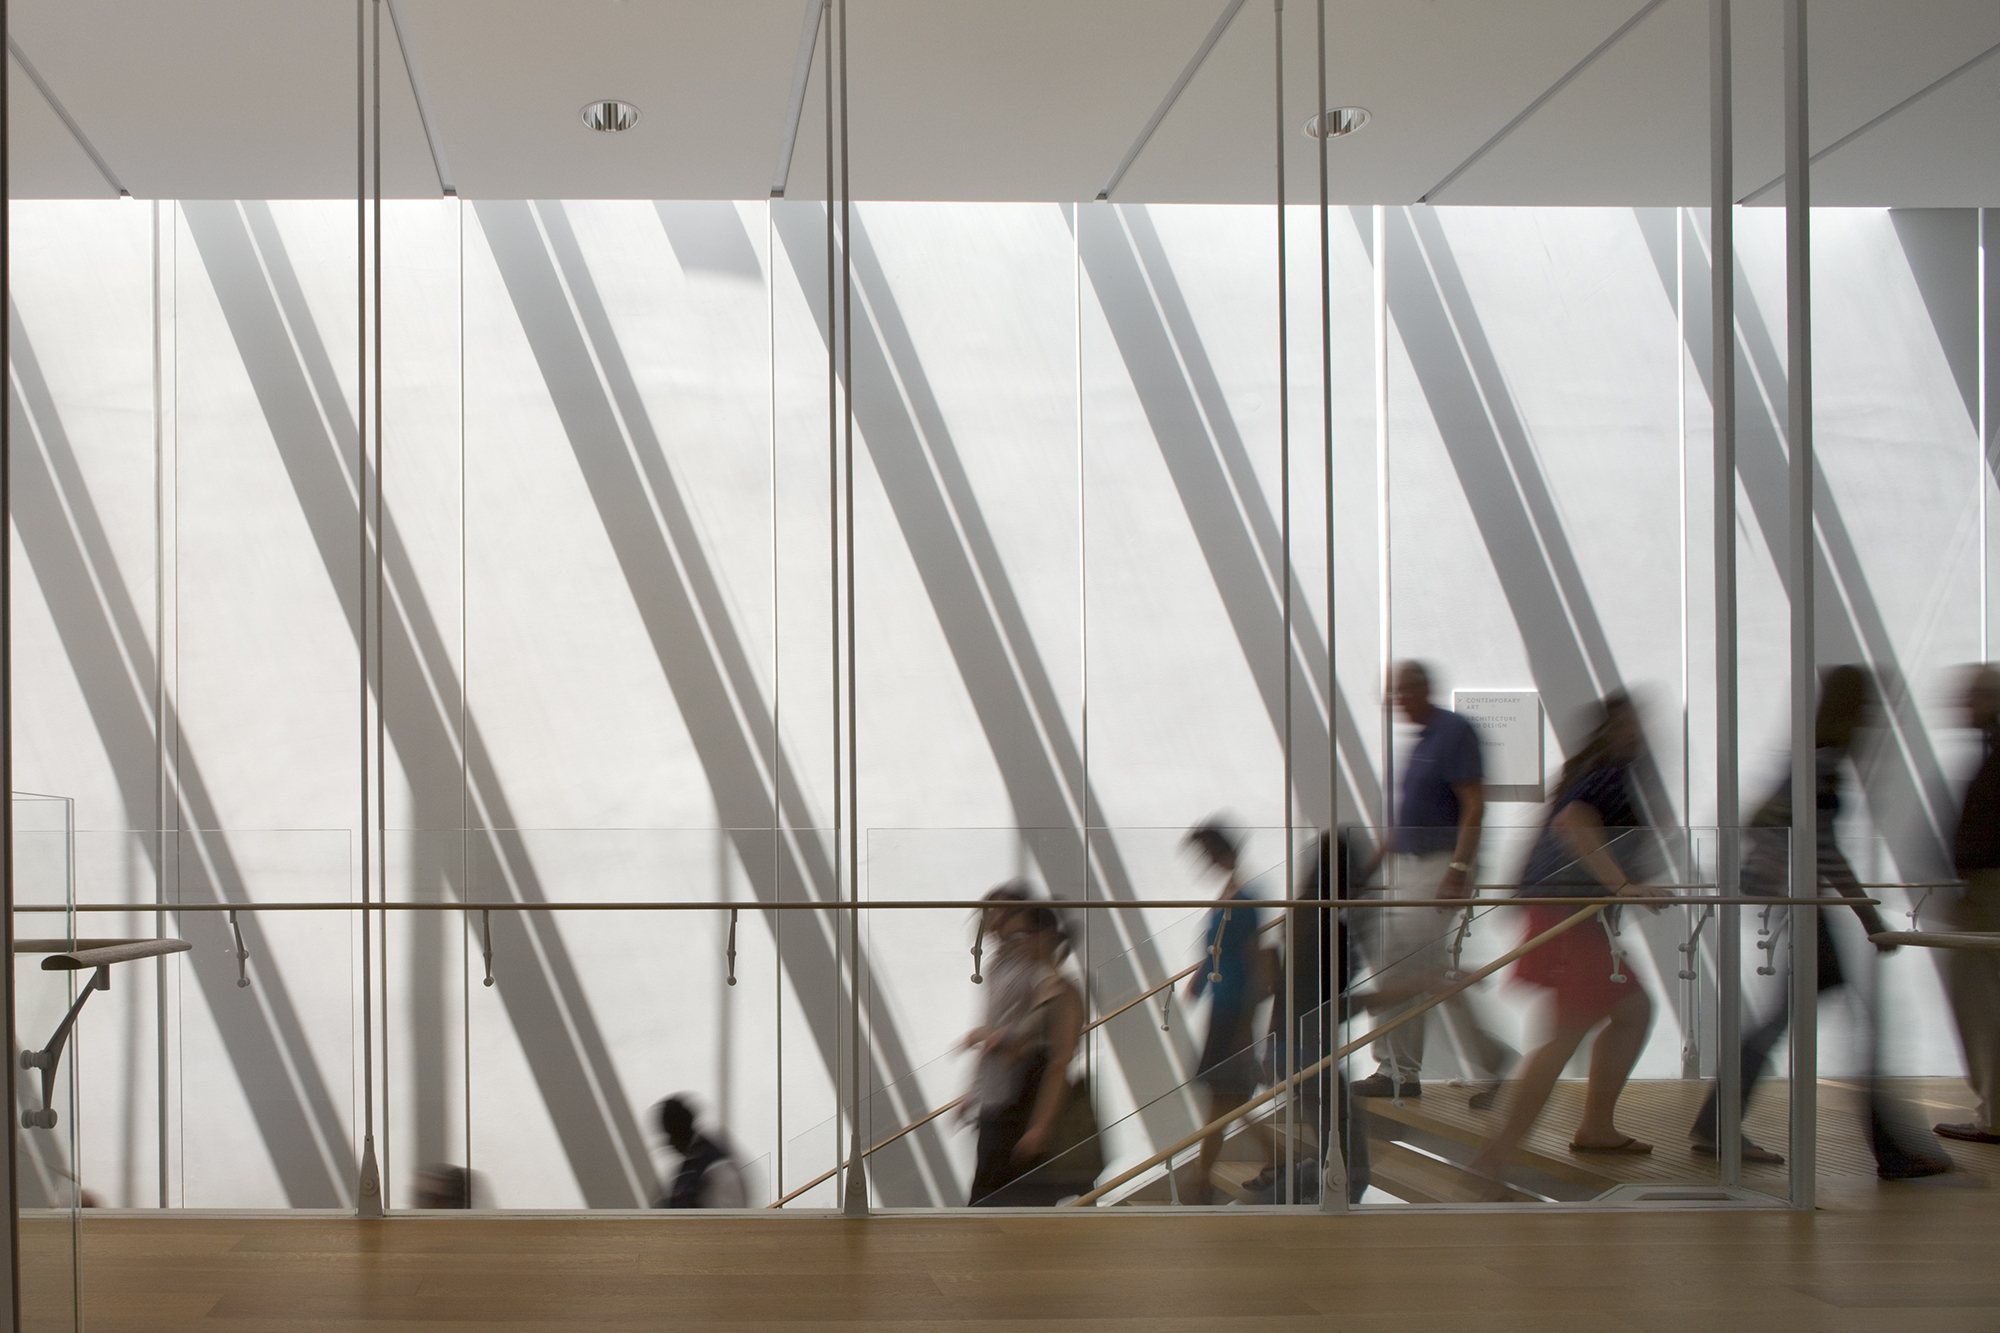 renzo piano building workshop I art institute of chicago | chicago usa